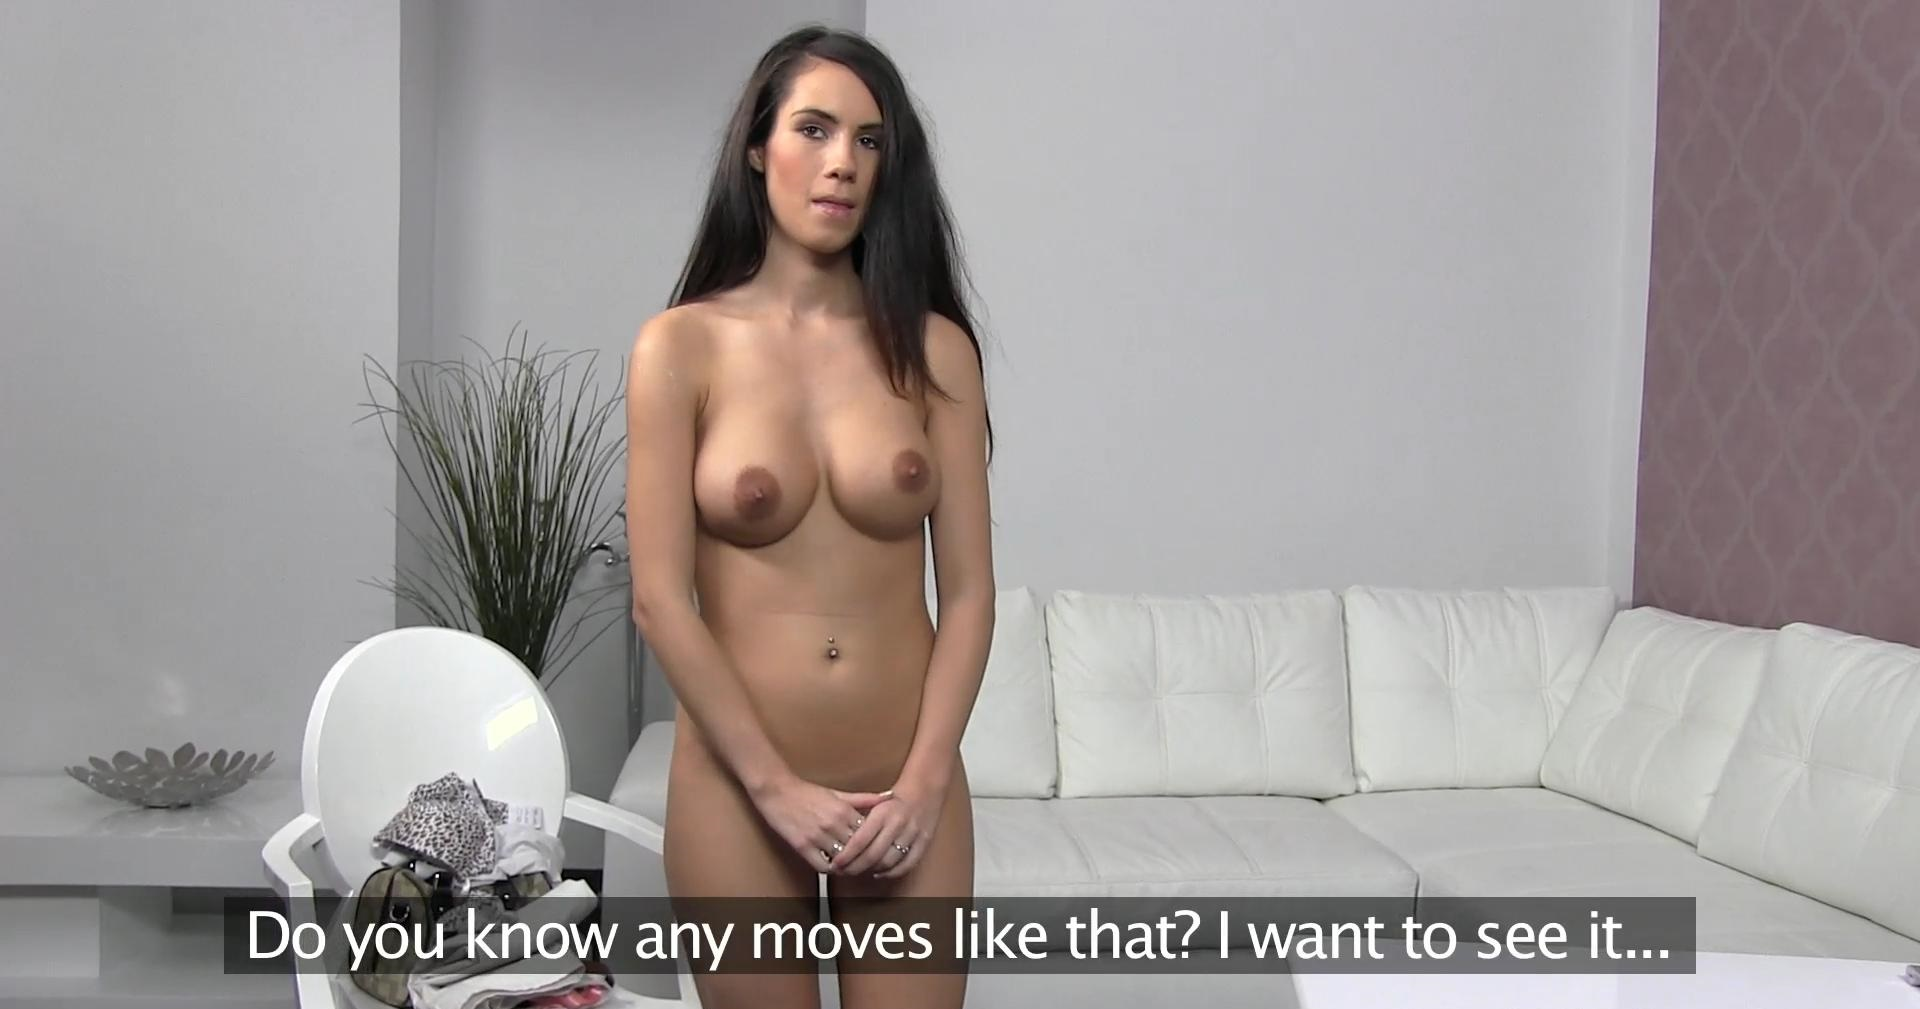 bigtits|Big Tits|map69.com